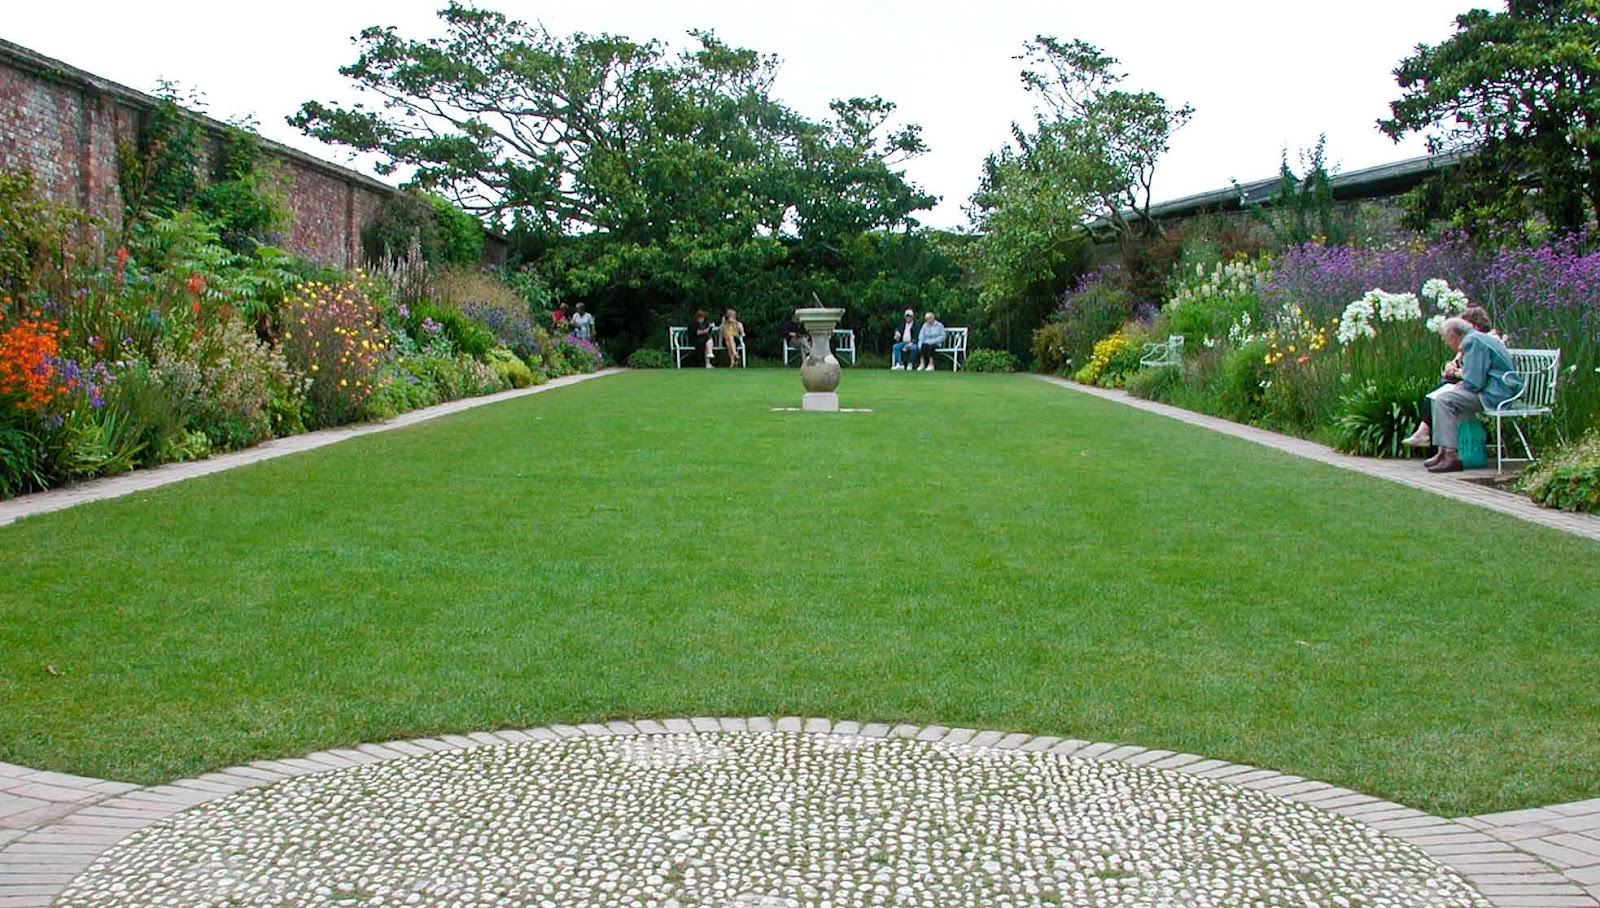 The Sundial Garden At The Lost Gardens Of Heligan..by ME!